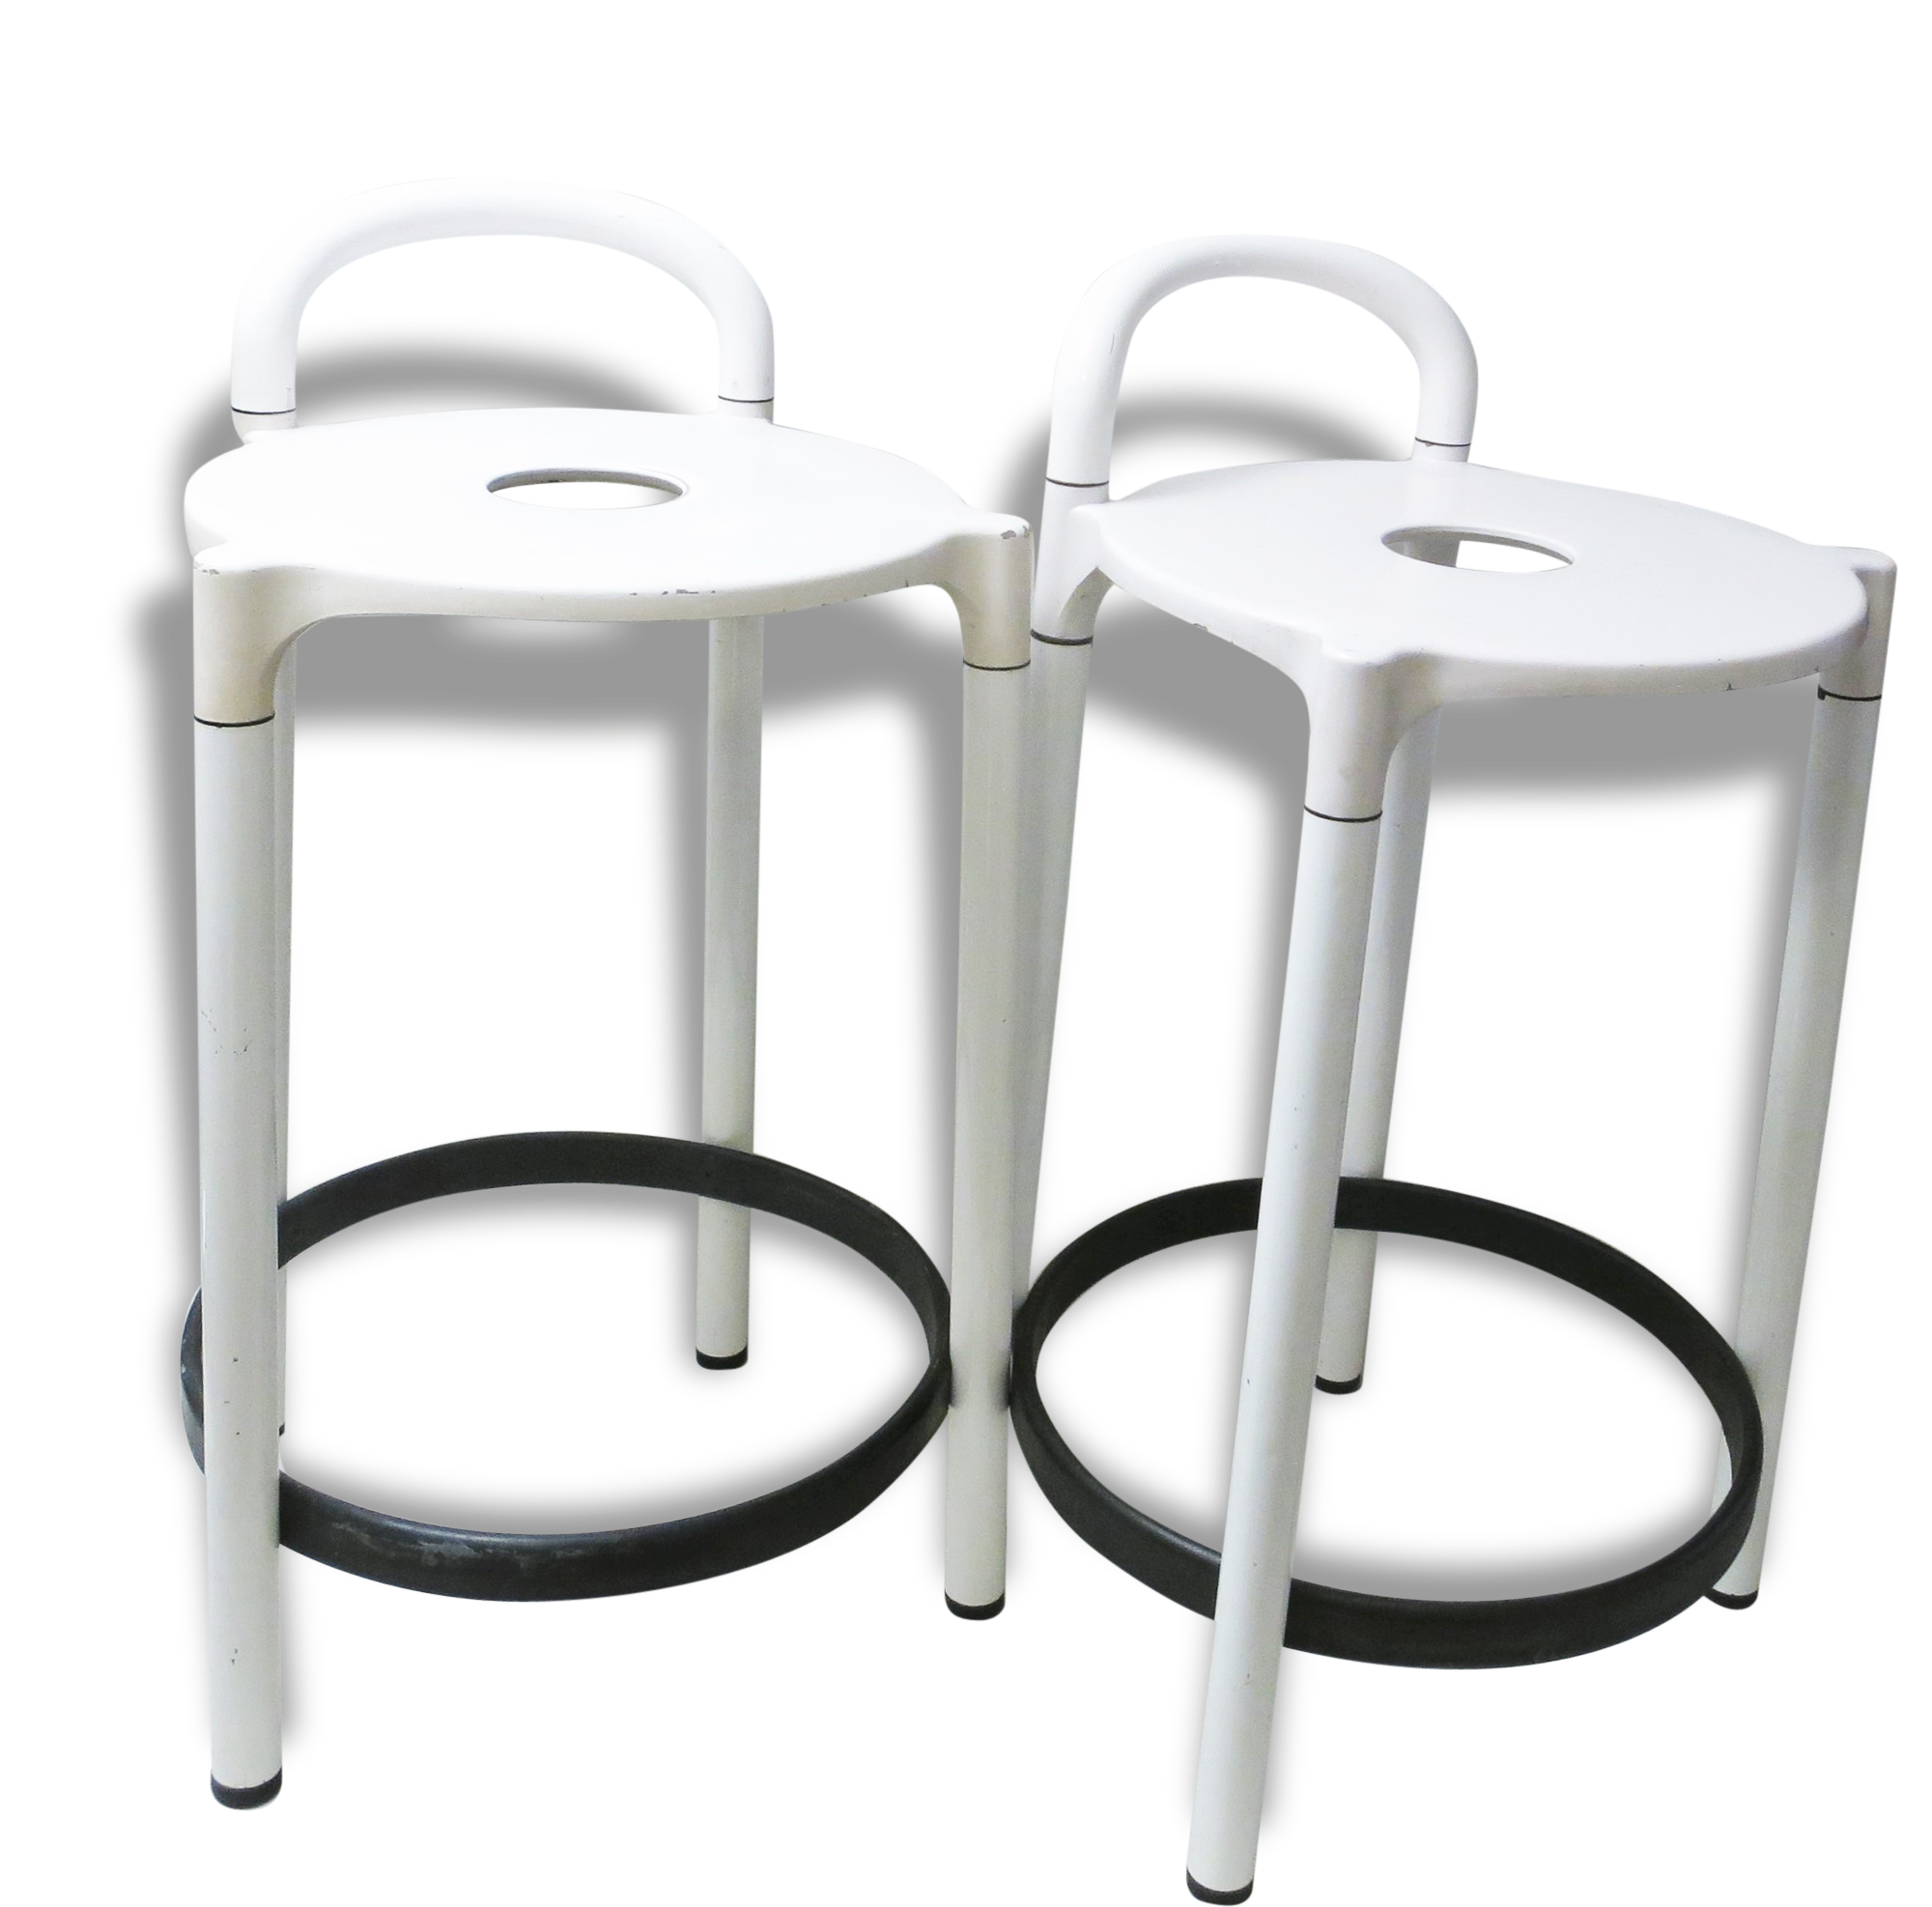 chaise bar kartell cool amazing affordable tabouret haut one more please cm kartell with chaise. Black Bedroom Furniture Sets. Home Design Ideas